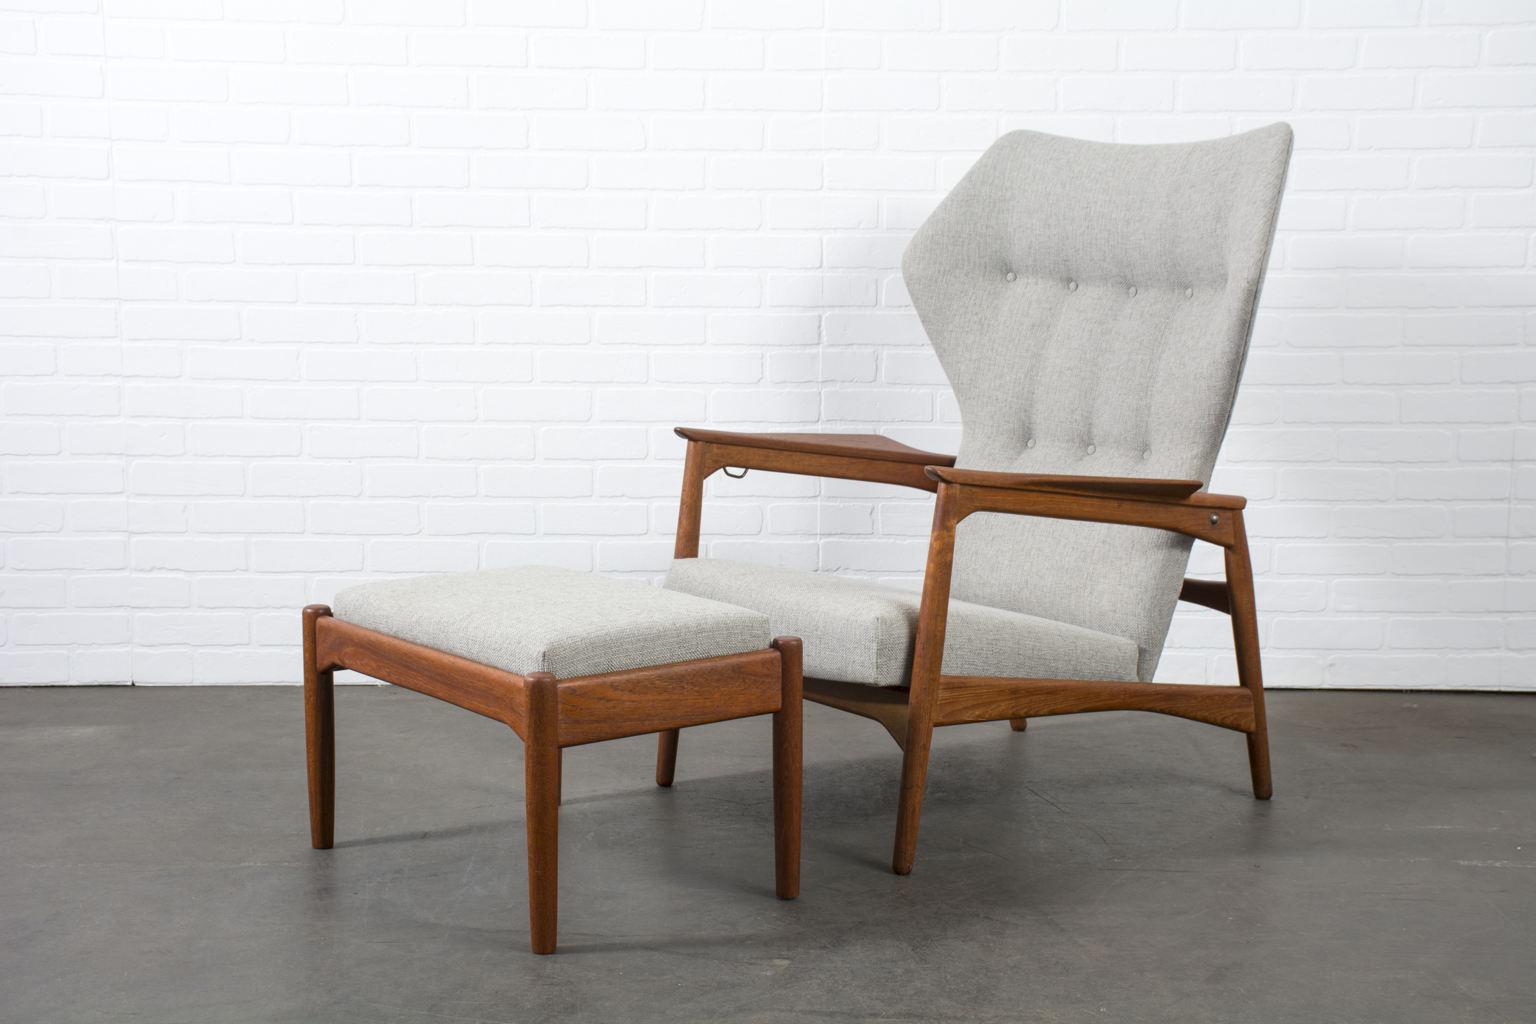 Danish Modern Lounge Chair and Ottoman by Ib Kofod-Larsen for Carlo Gahrn